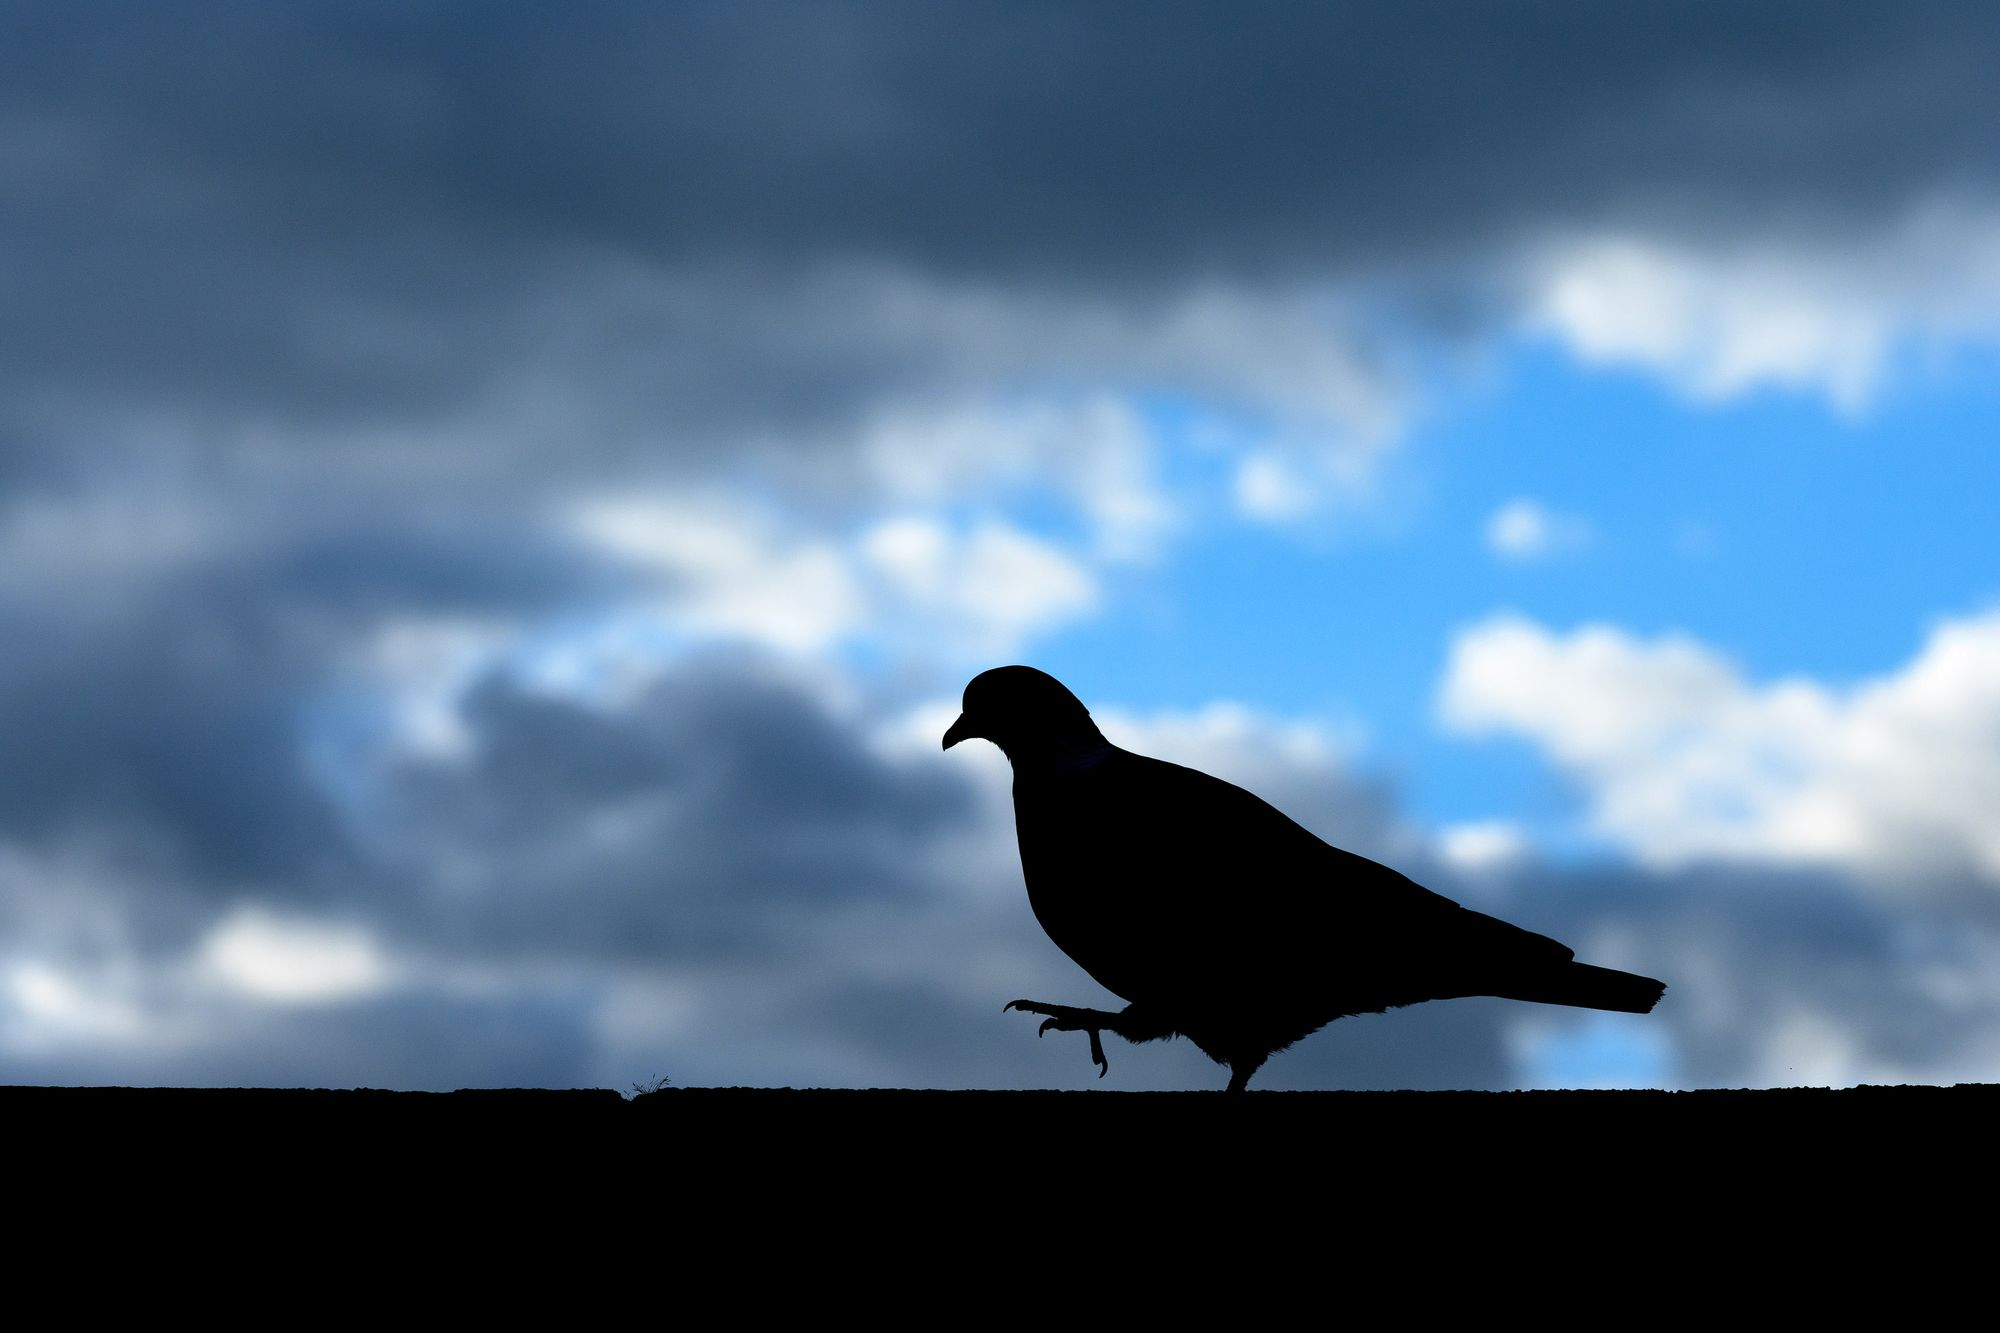 photographing pigeons, pigeon portrait, urban wildlife photography, silhouette